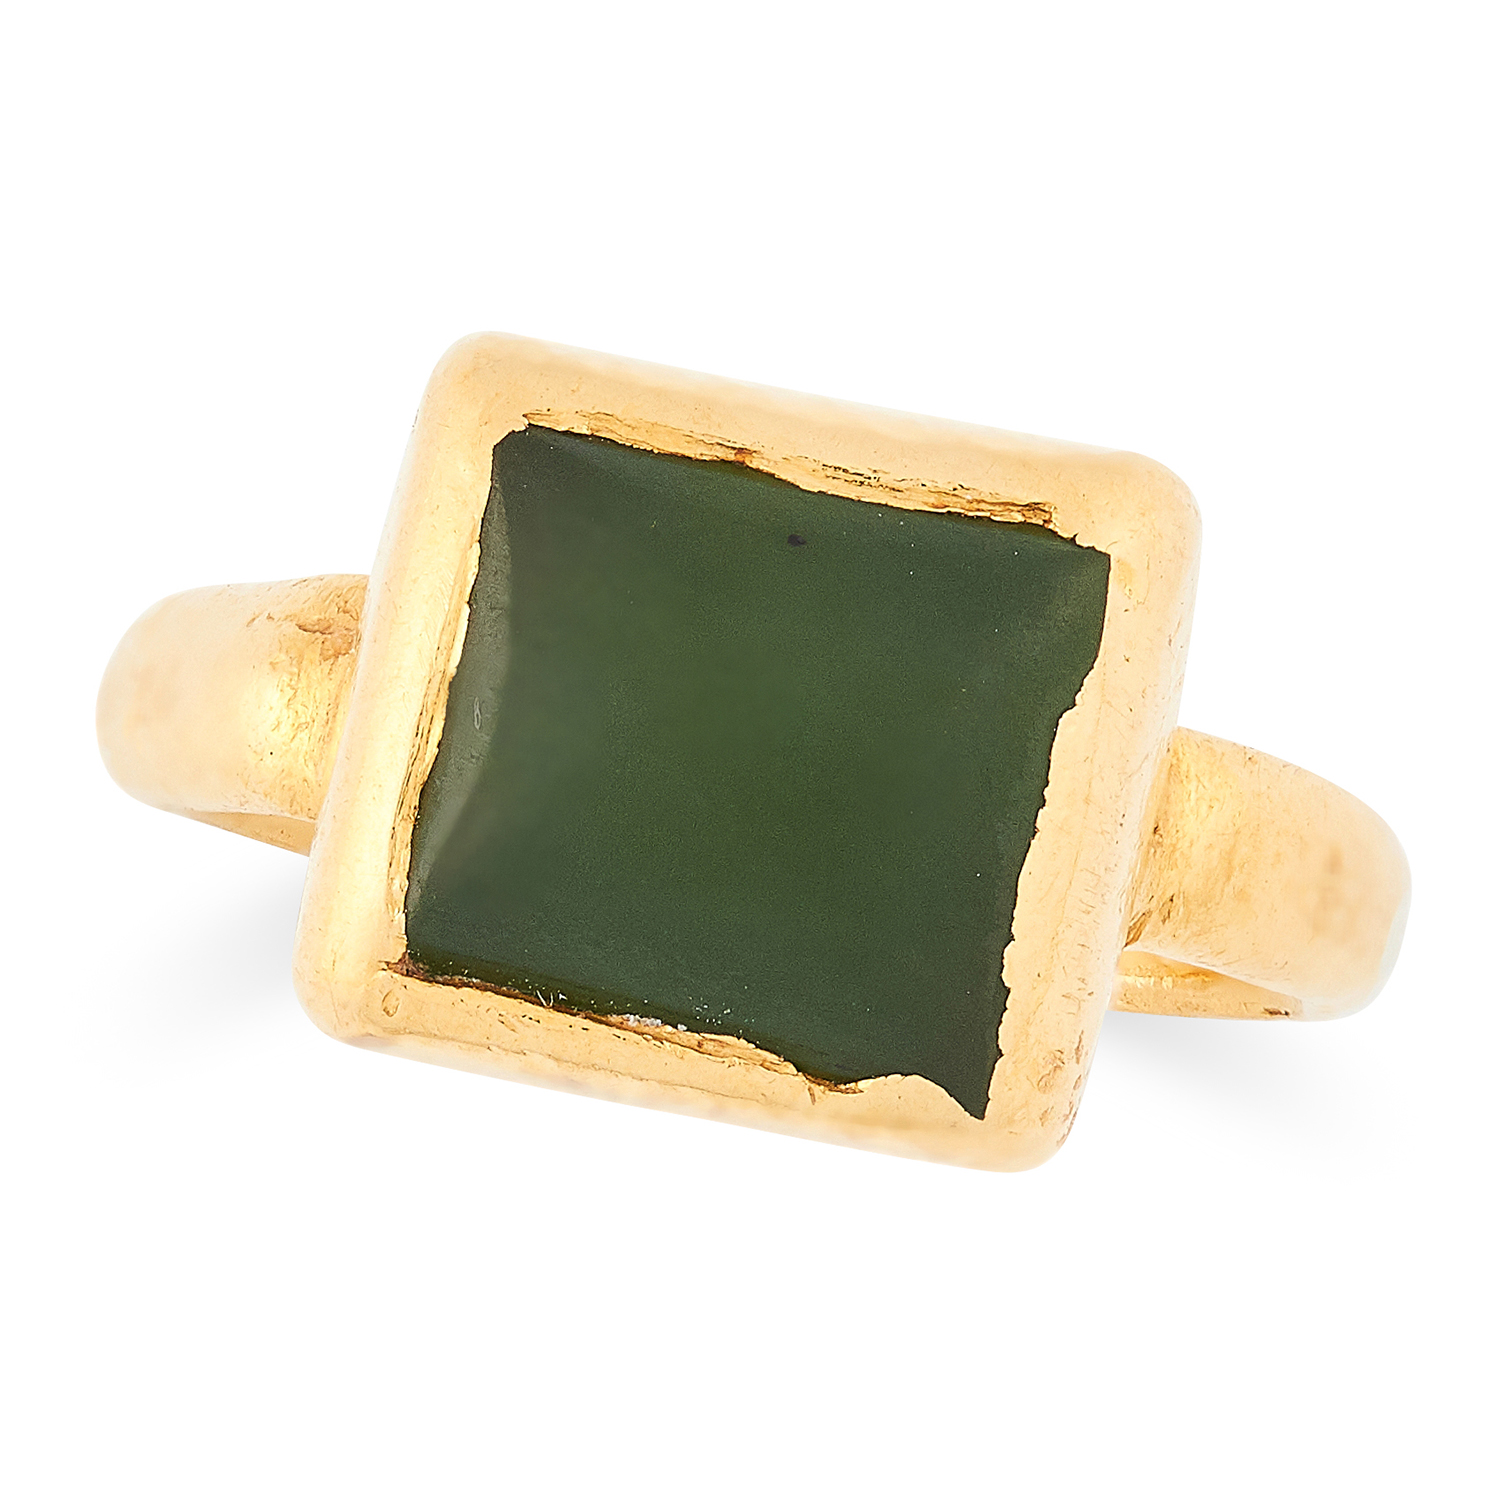 ANTIQUE 15TH OR LATER CENTURY GREEN GEMSTONE RING set with polished green gemstone, size H / 4, 6.